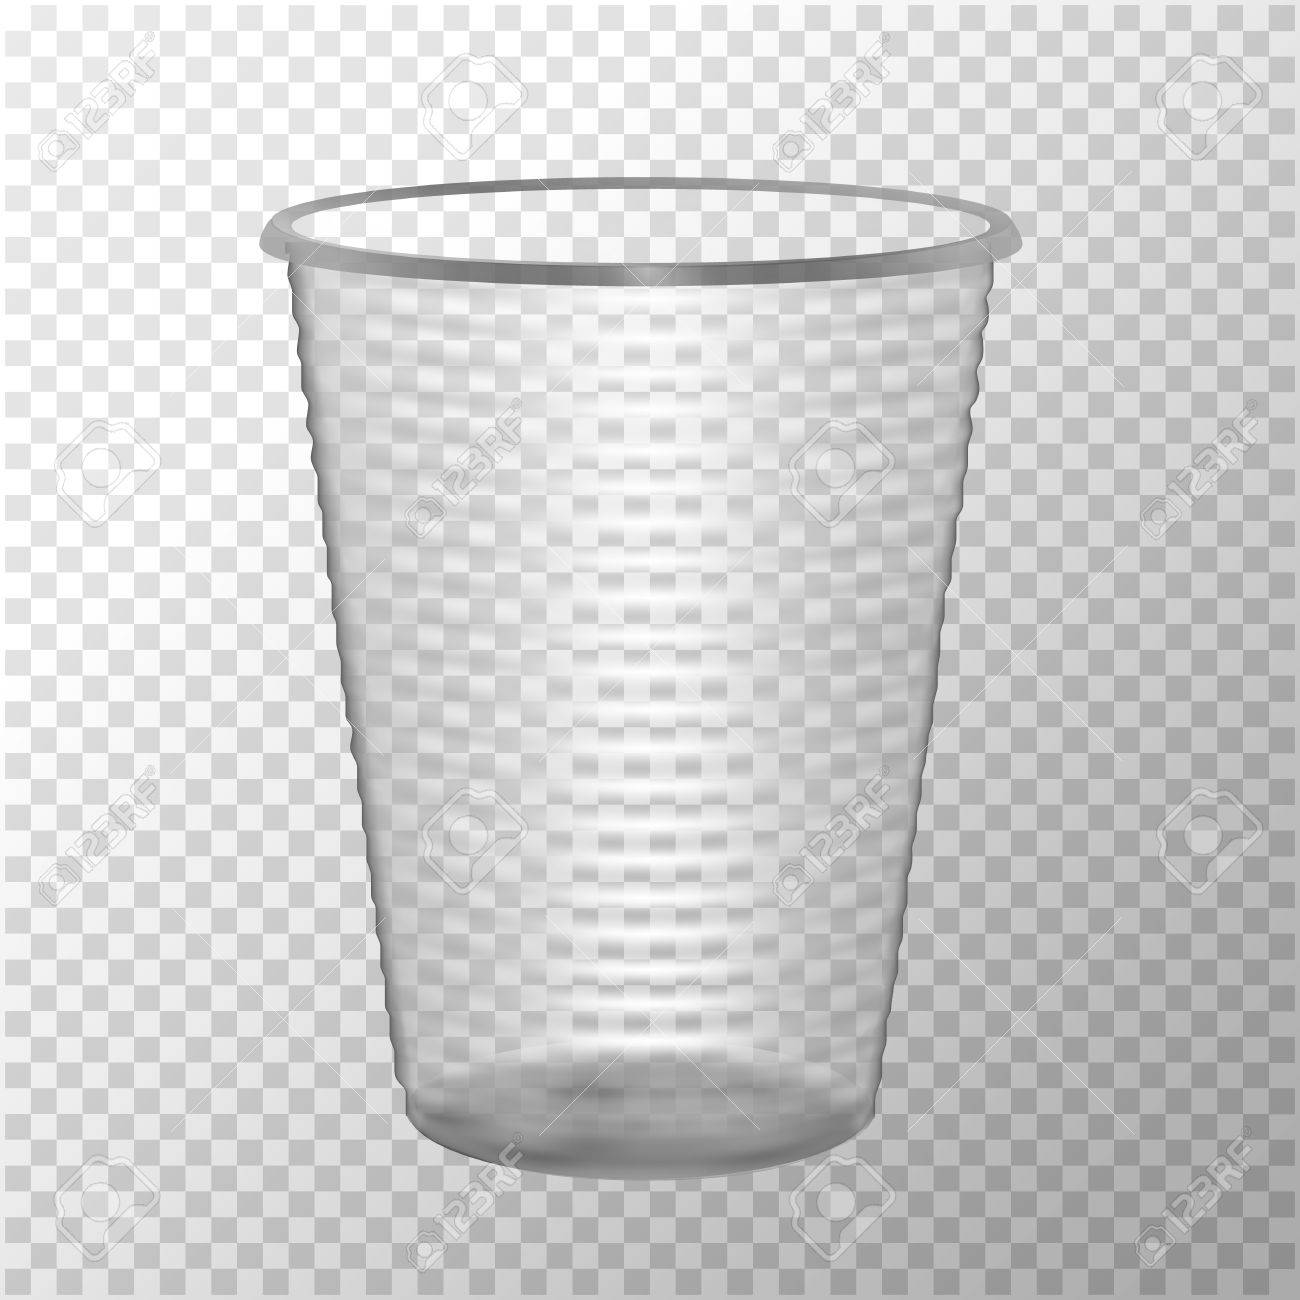 Transparent Plastic Cup Mock Up For Your Design Photo Realistic